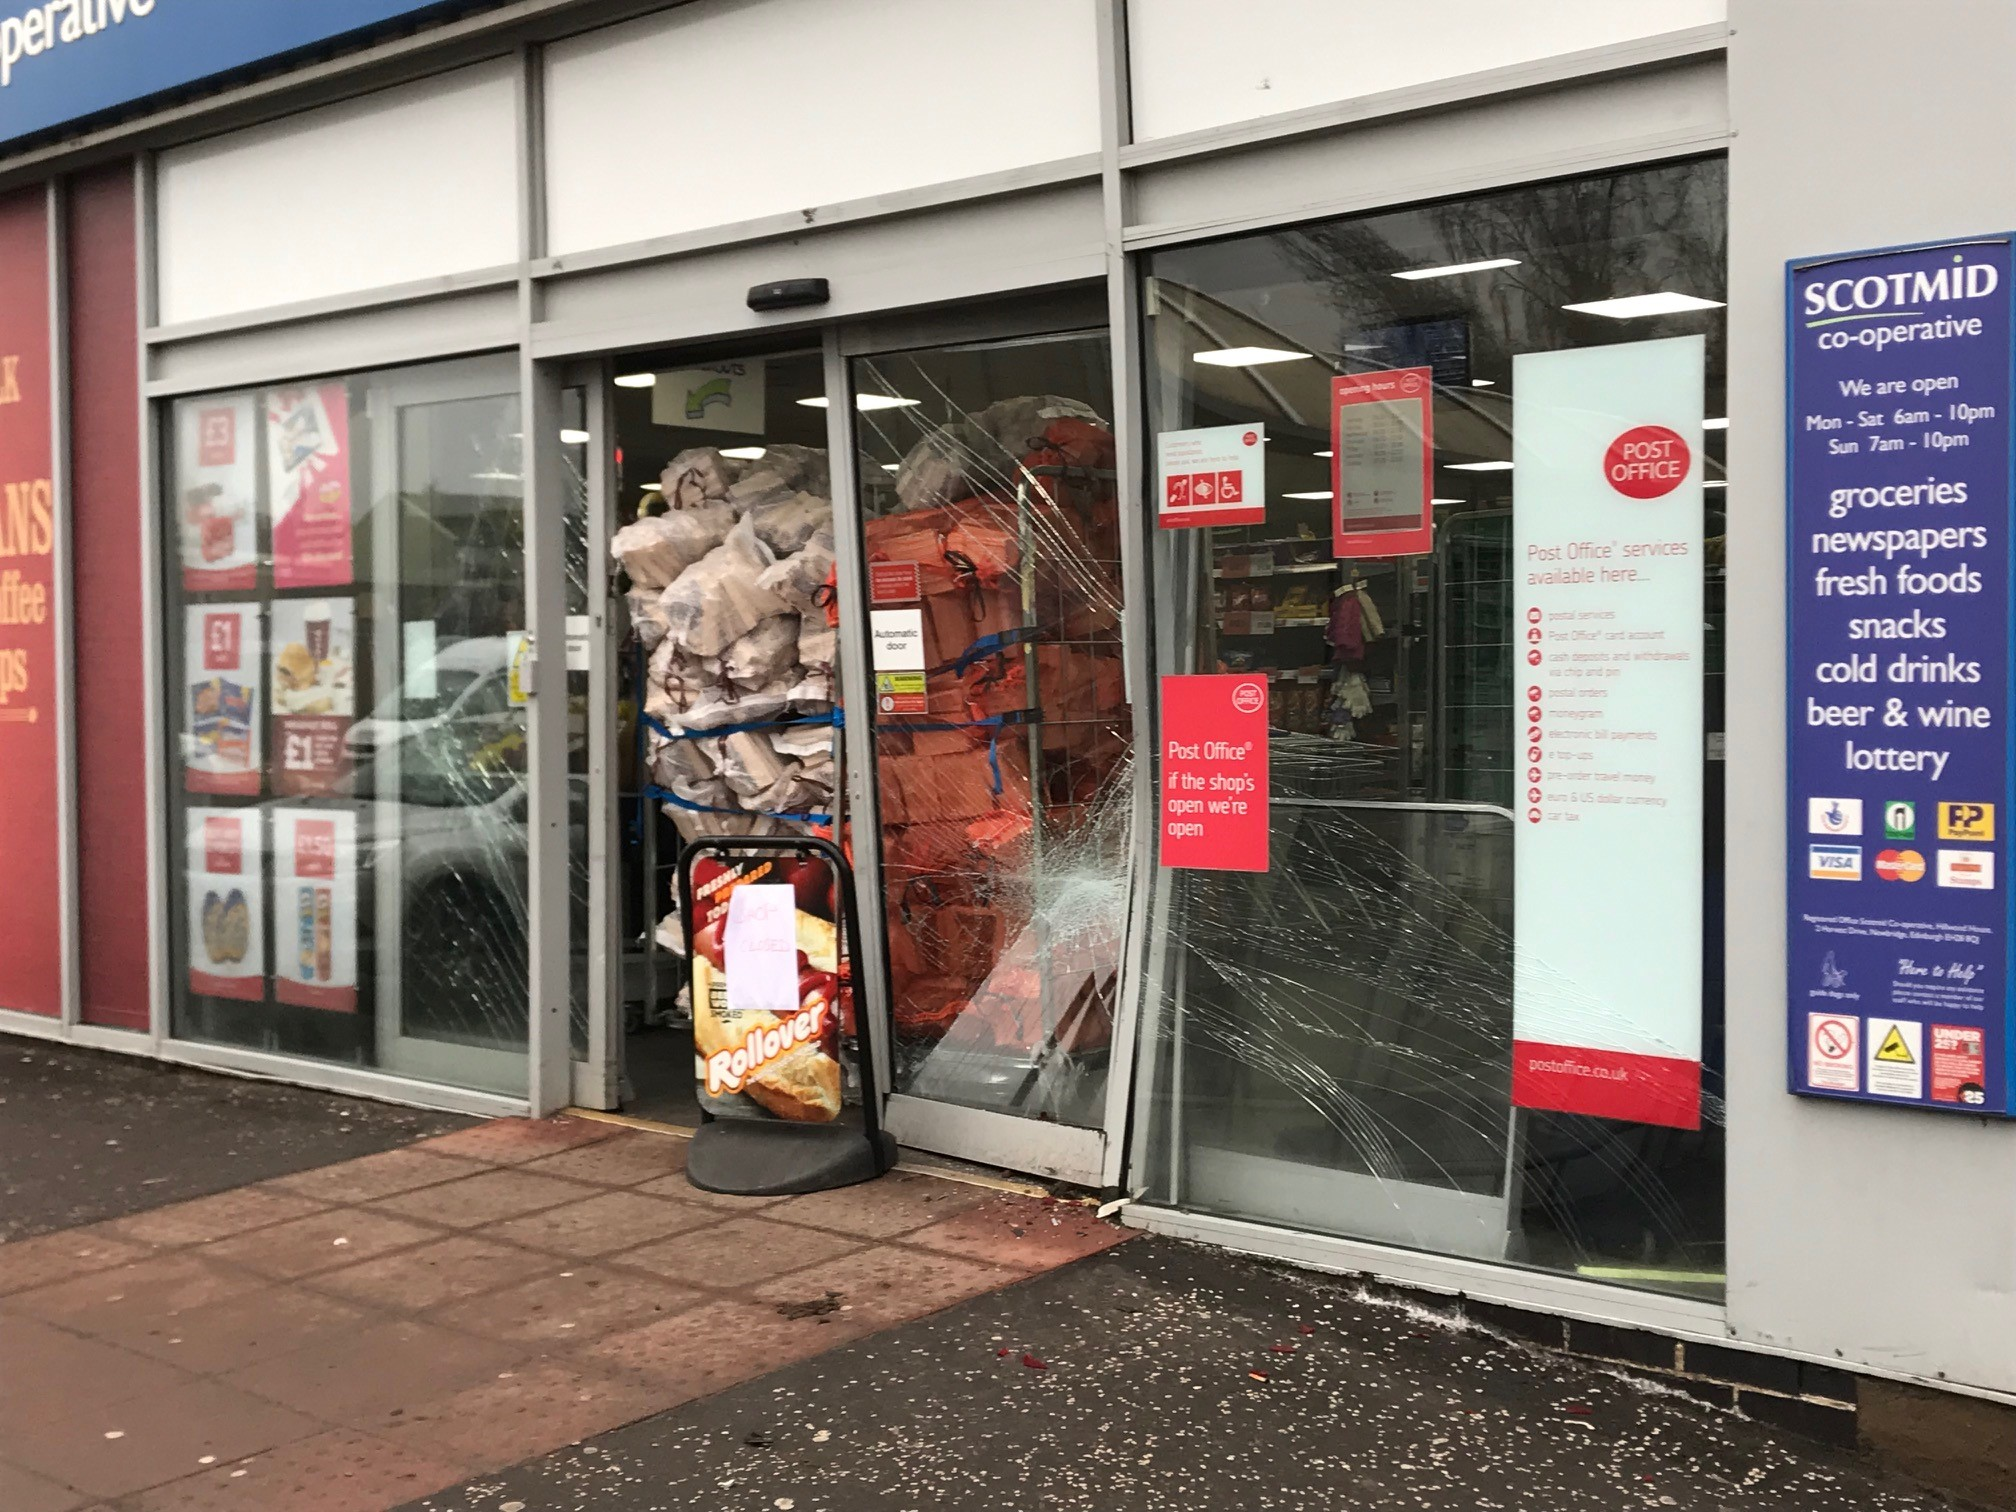 Scotmid in Coupar Angus after the incident.